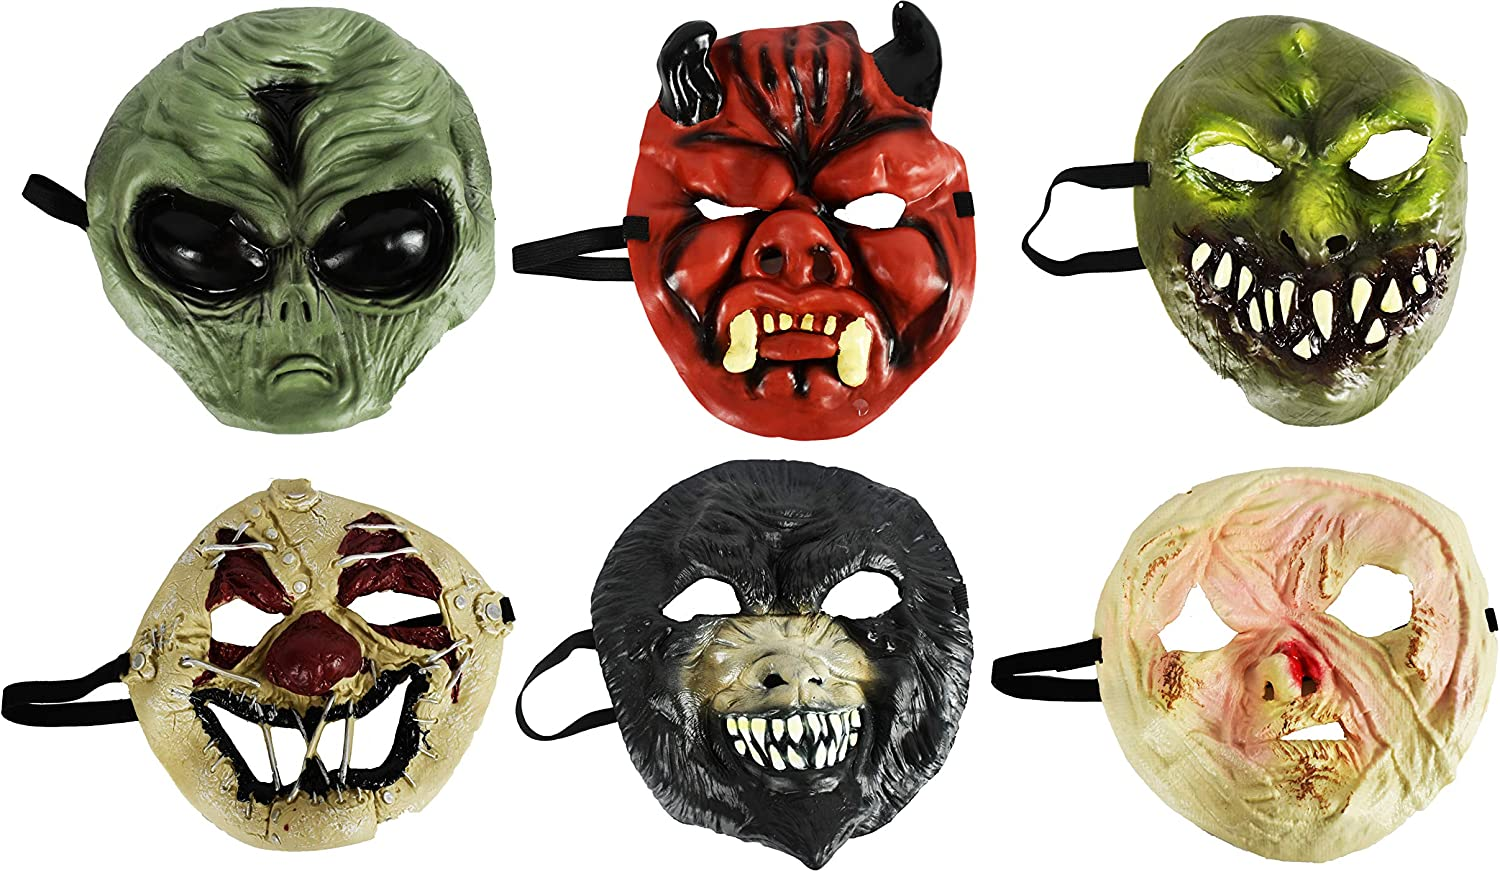 Amazon.com: Set of 6 Assorted Spooky Halloween Masks! Perfect for Scaring!  Green Monster, Black Monster, Flesh Mask Alien, Devil, and Clown!: Clothing